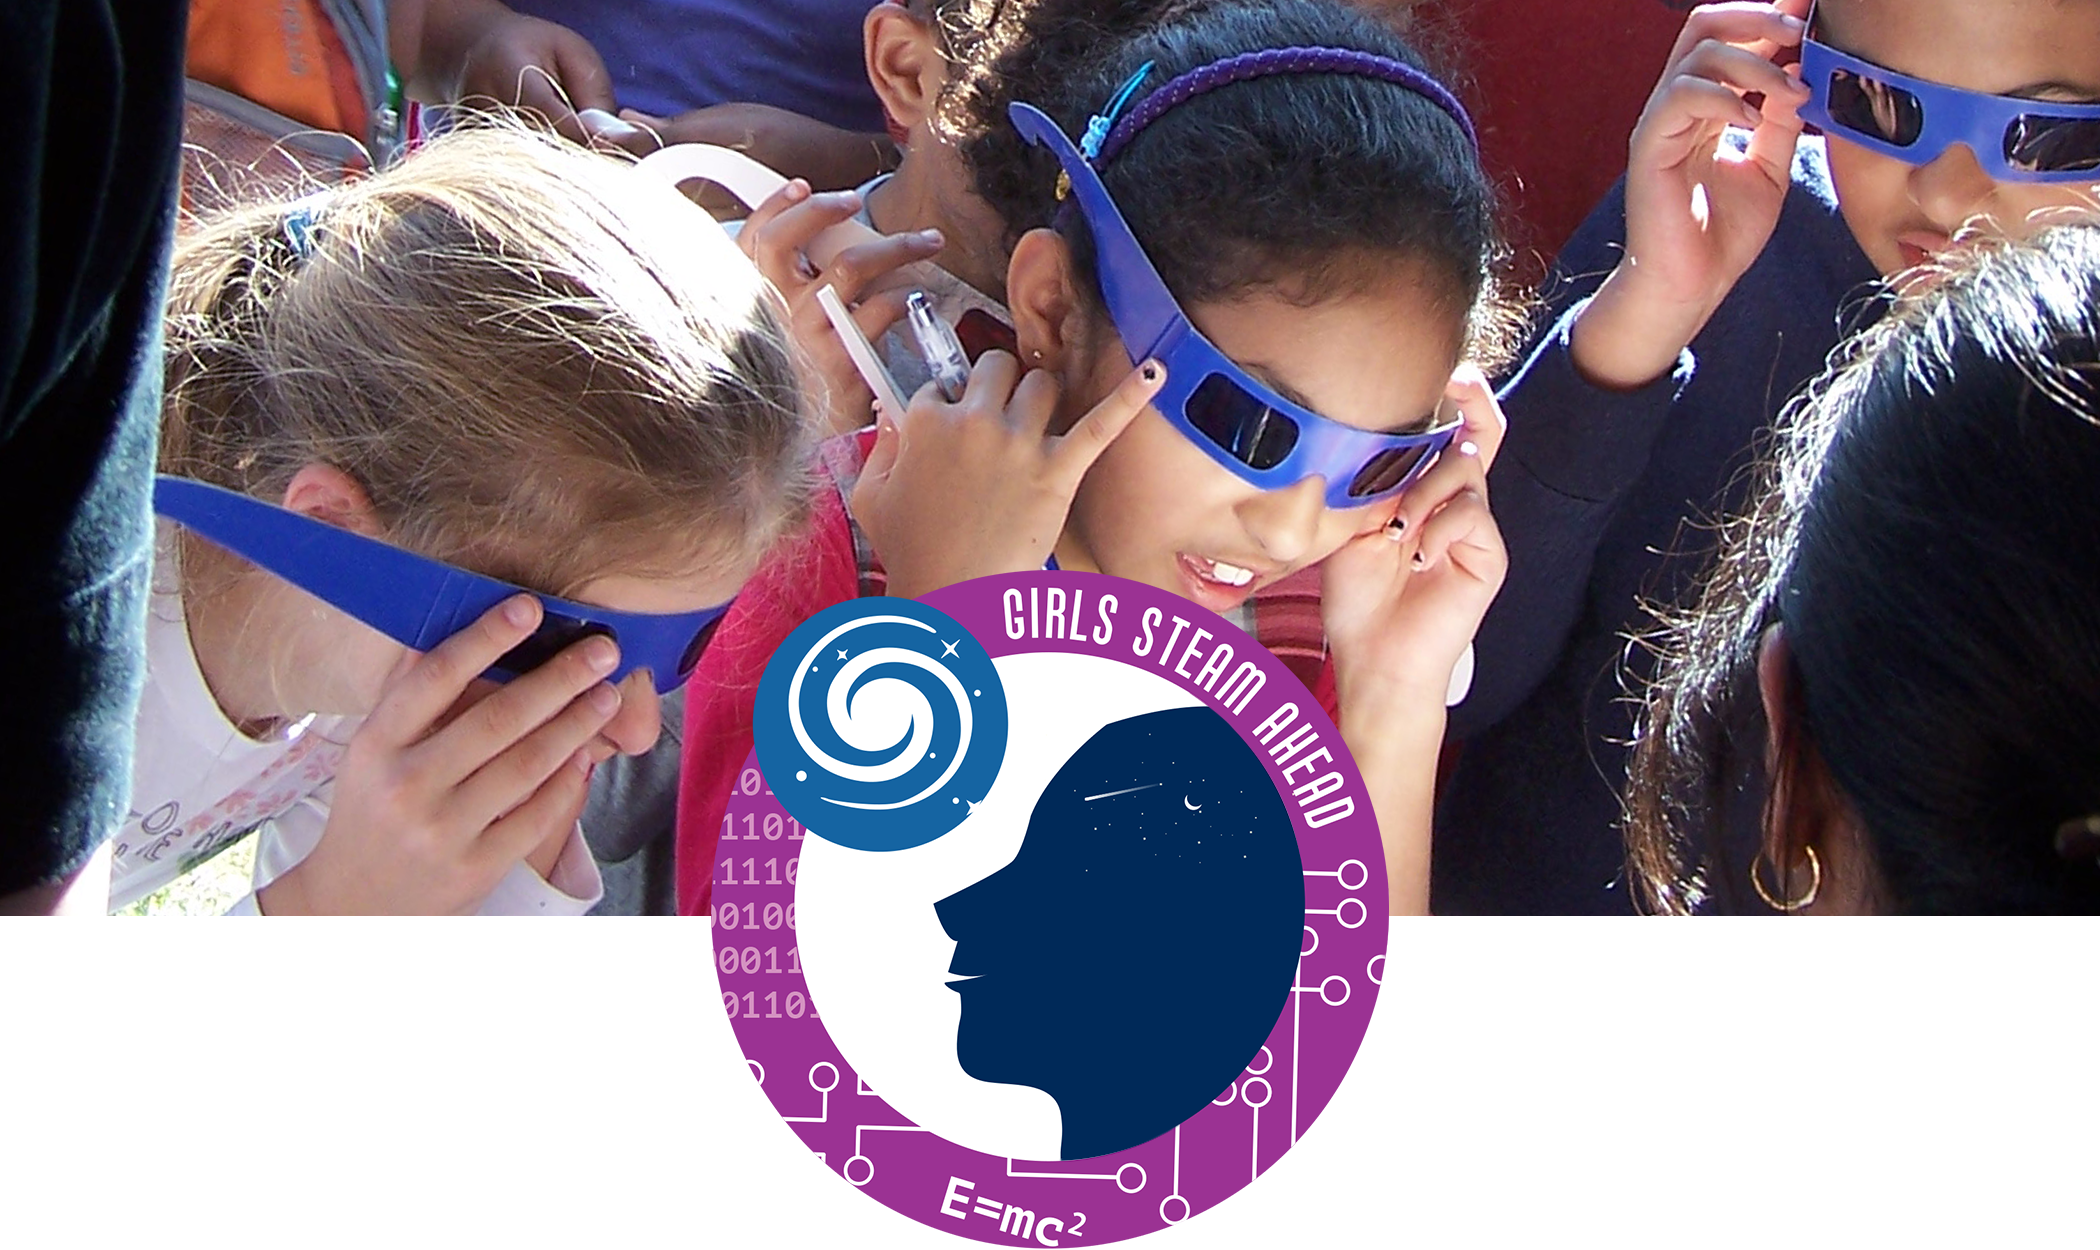 Girls STEAM Ahead badge, and children engaged in a STEM activity wearing filter glasses